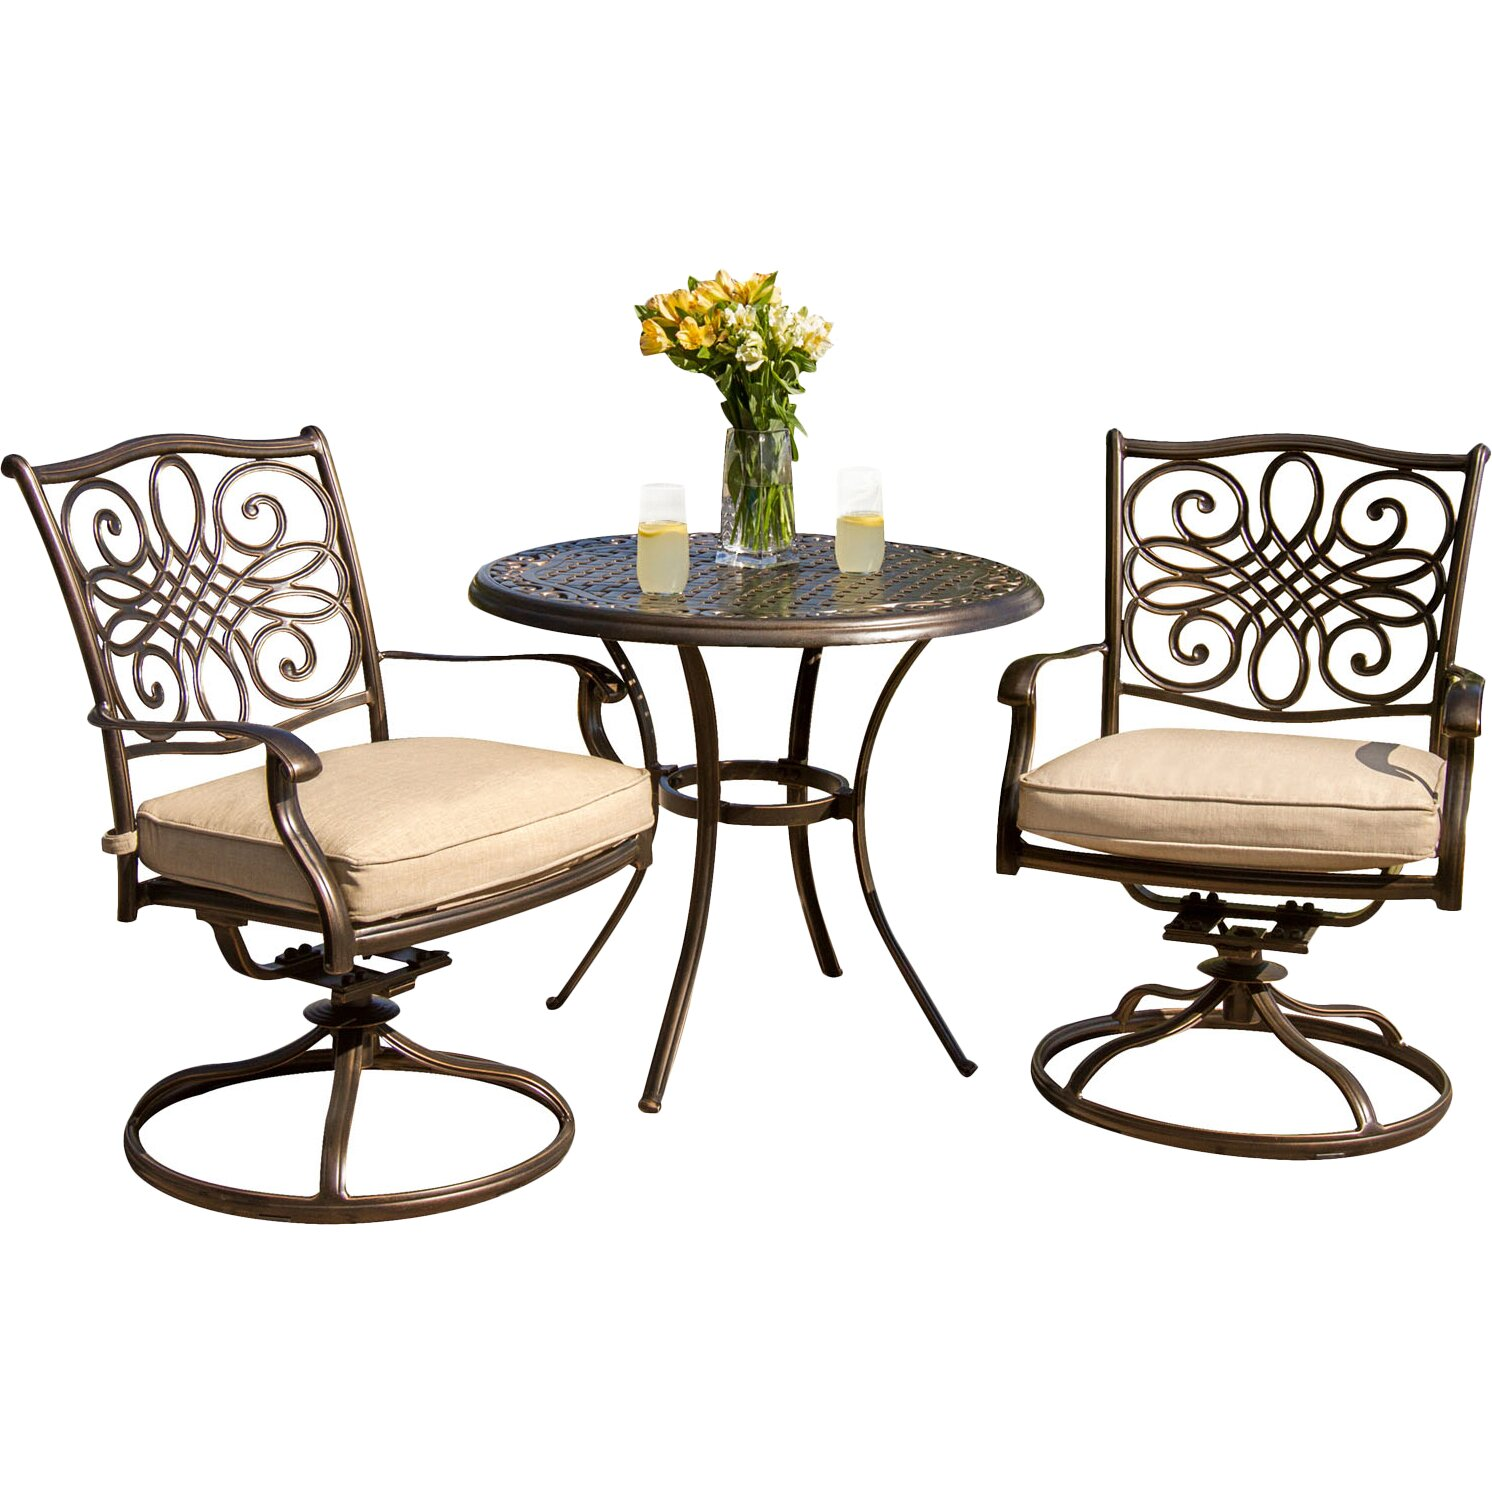 Hanover traditions 3 piece bistro set with cushions for Patio chair set